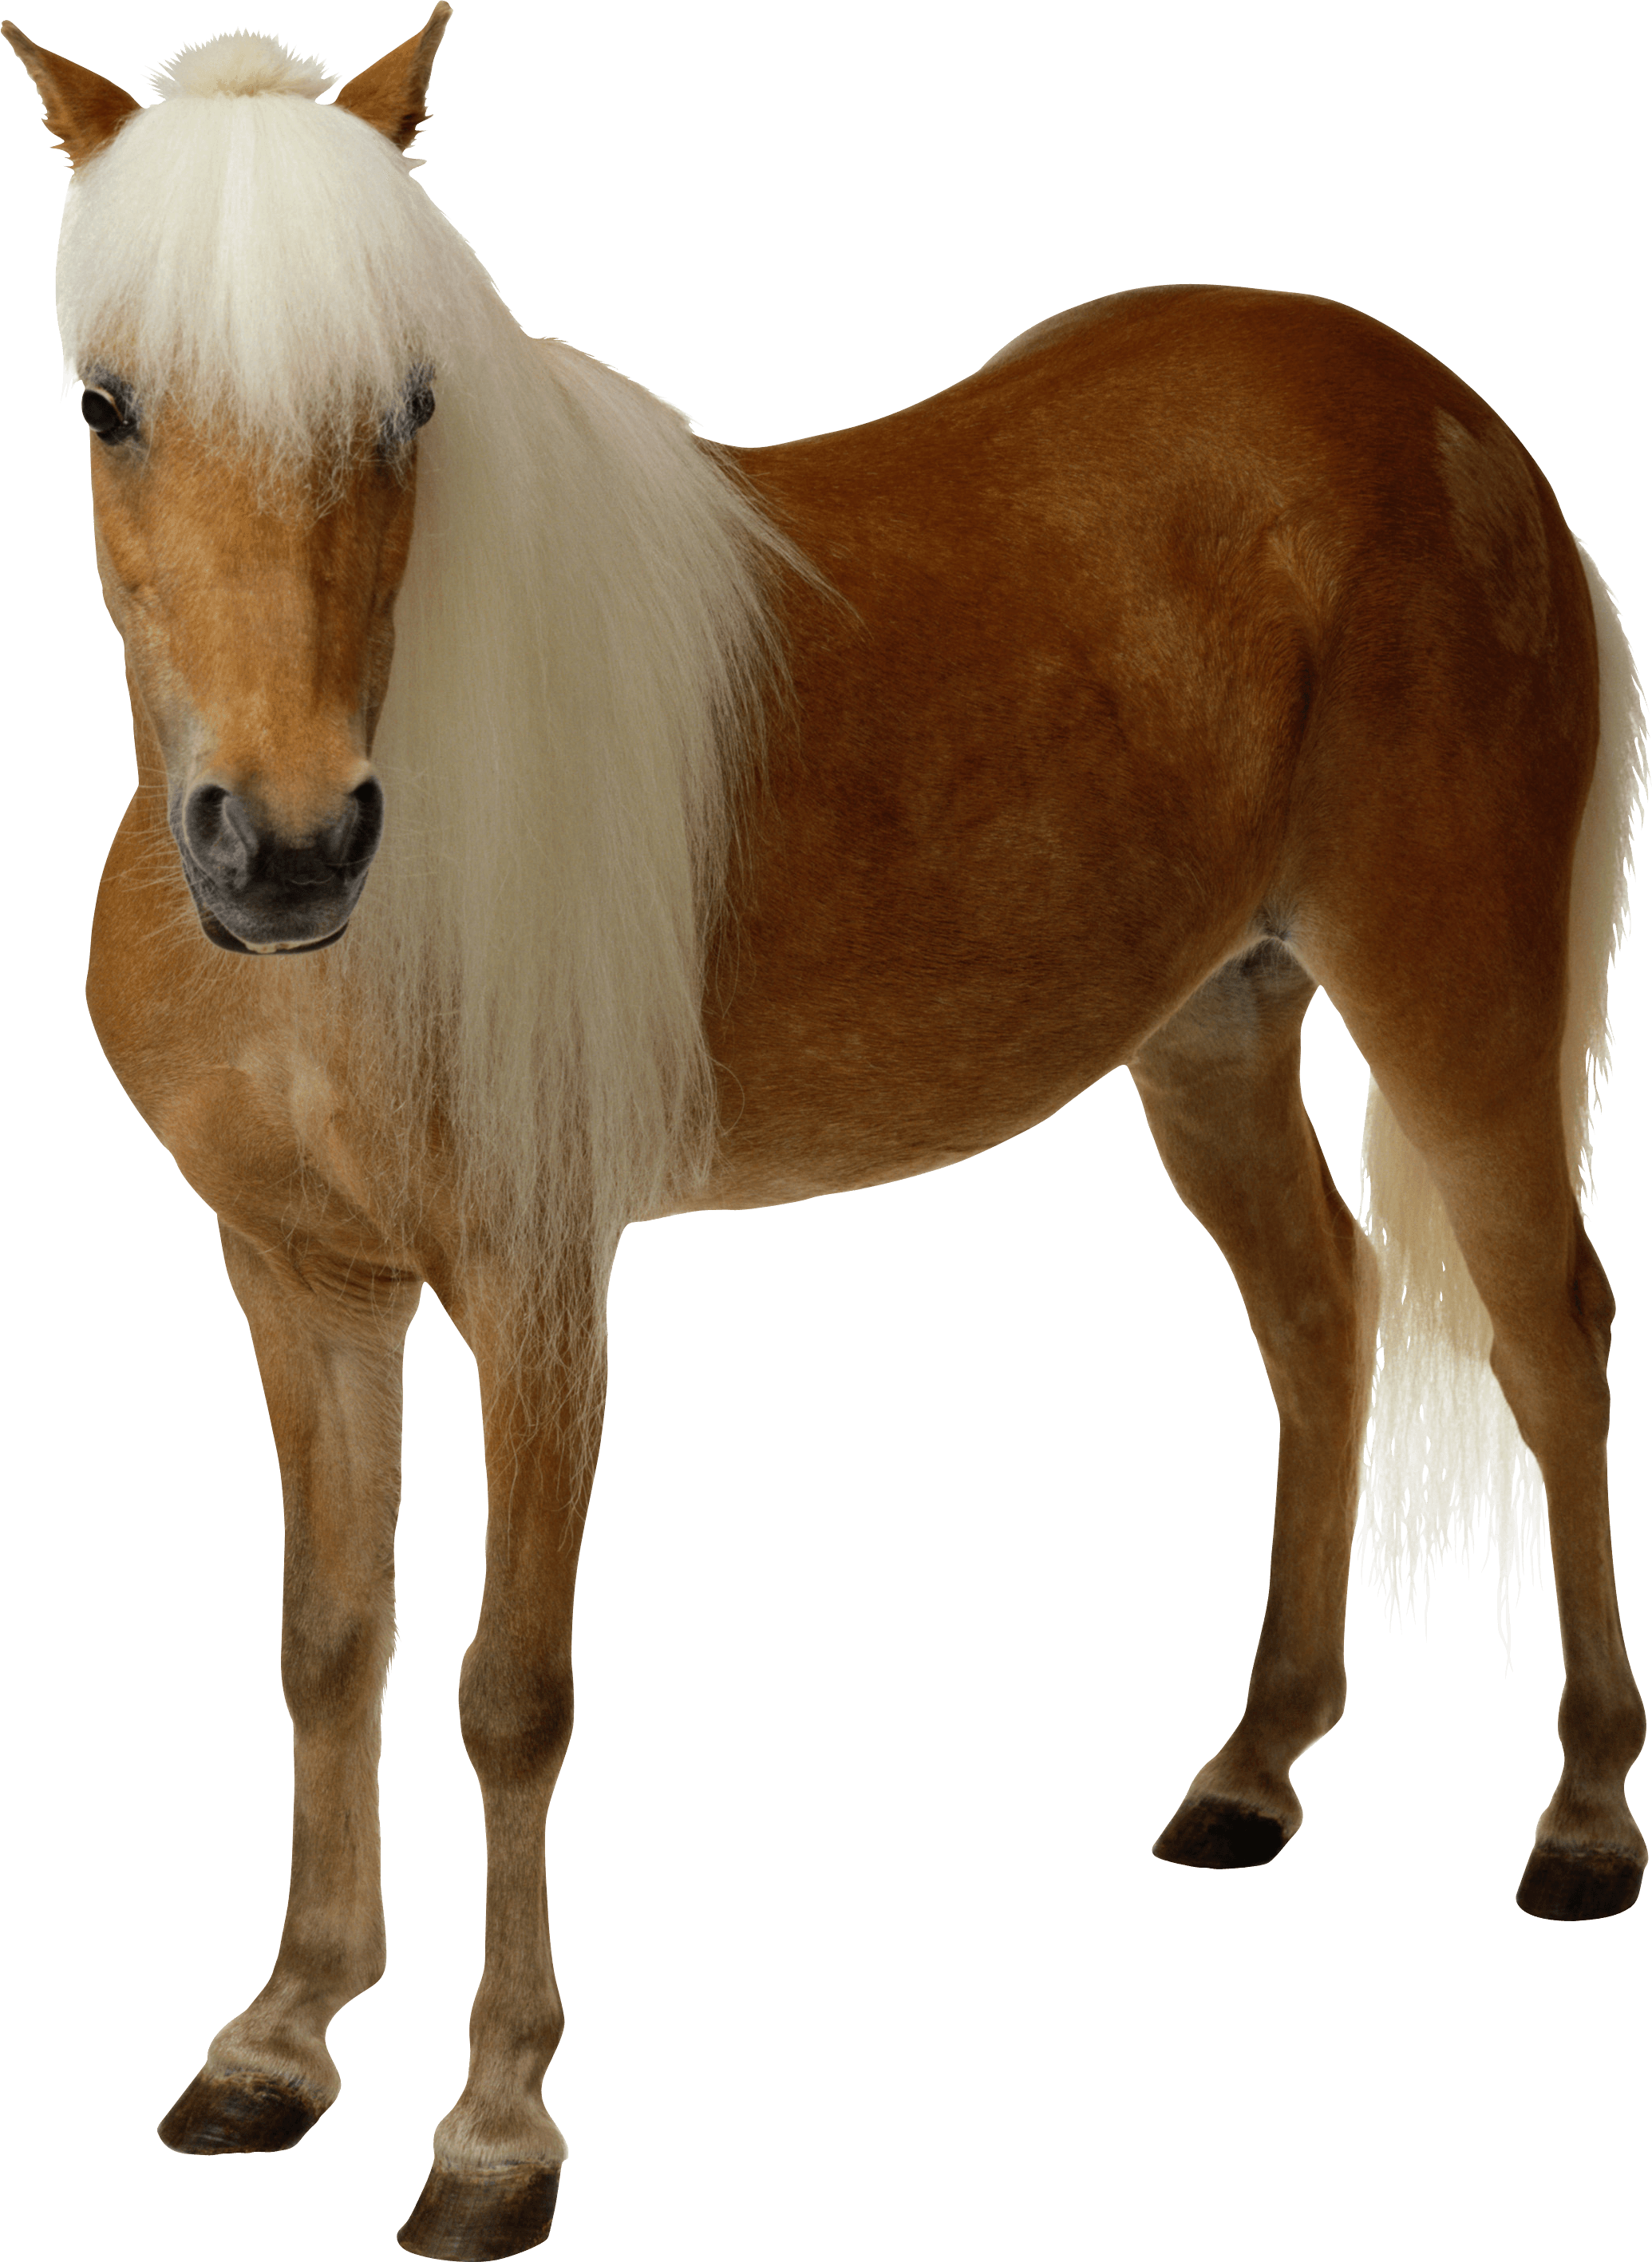 Brown horse with long hair